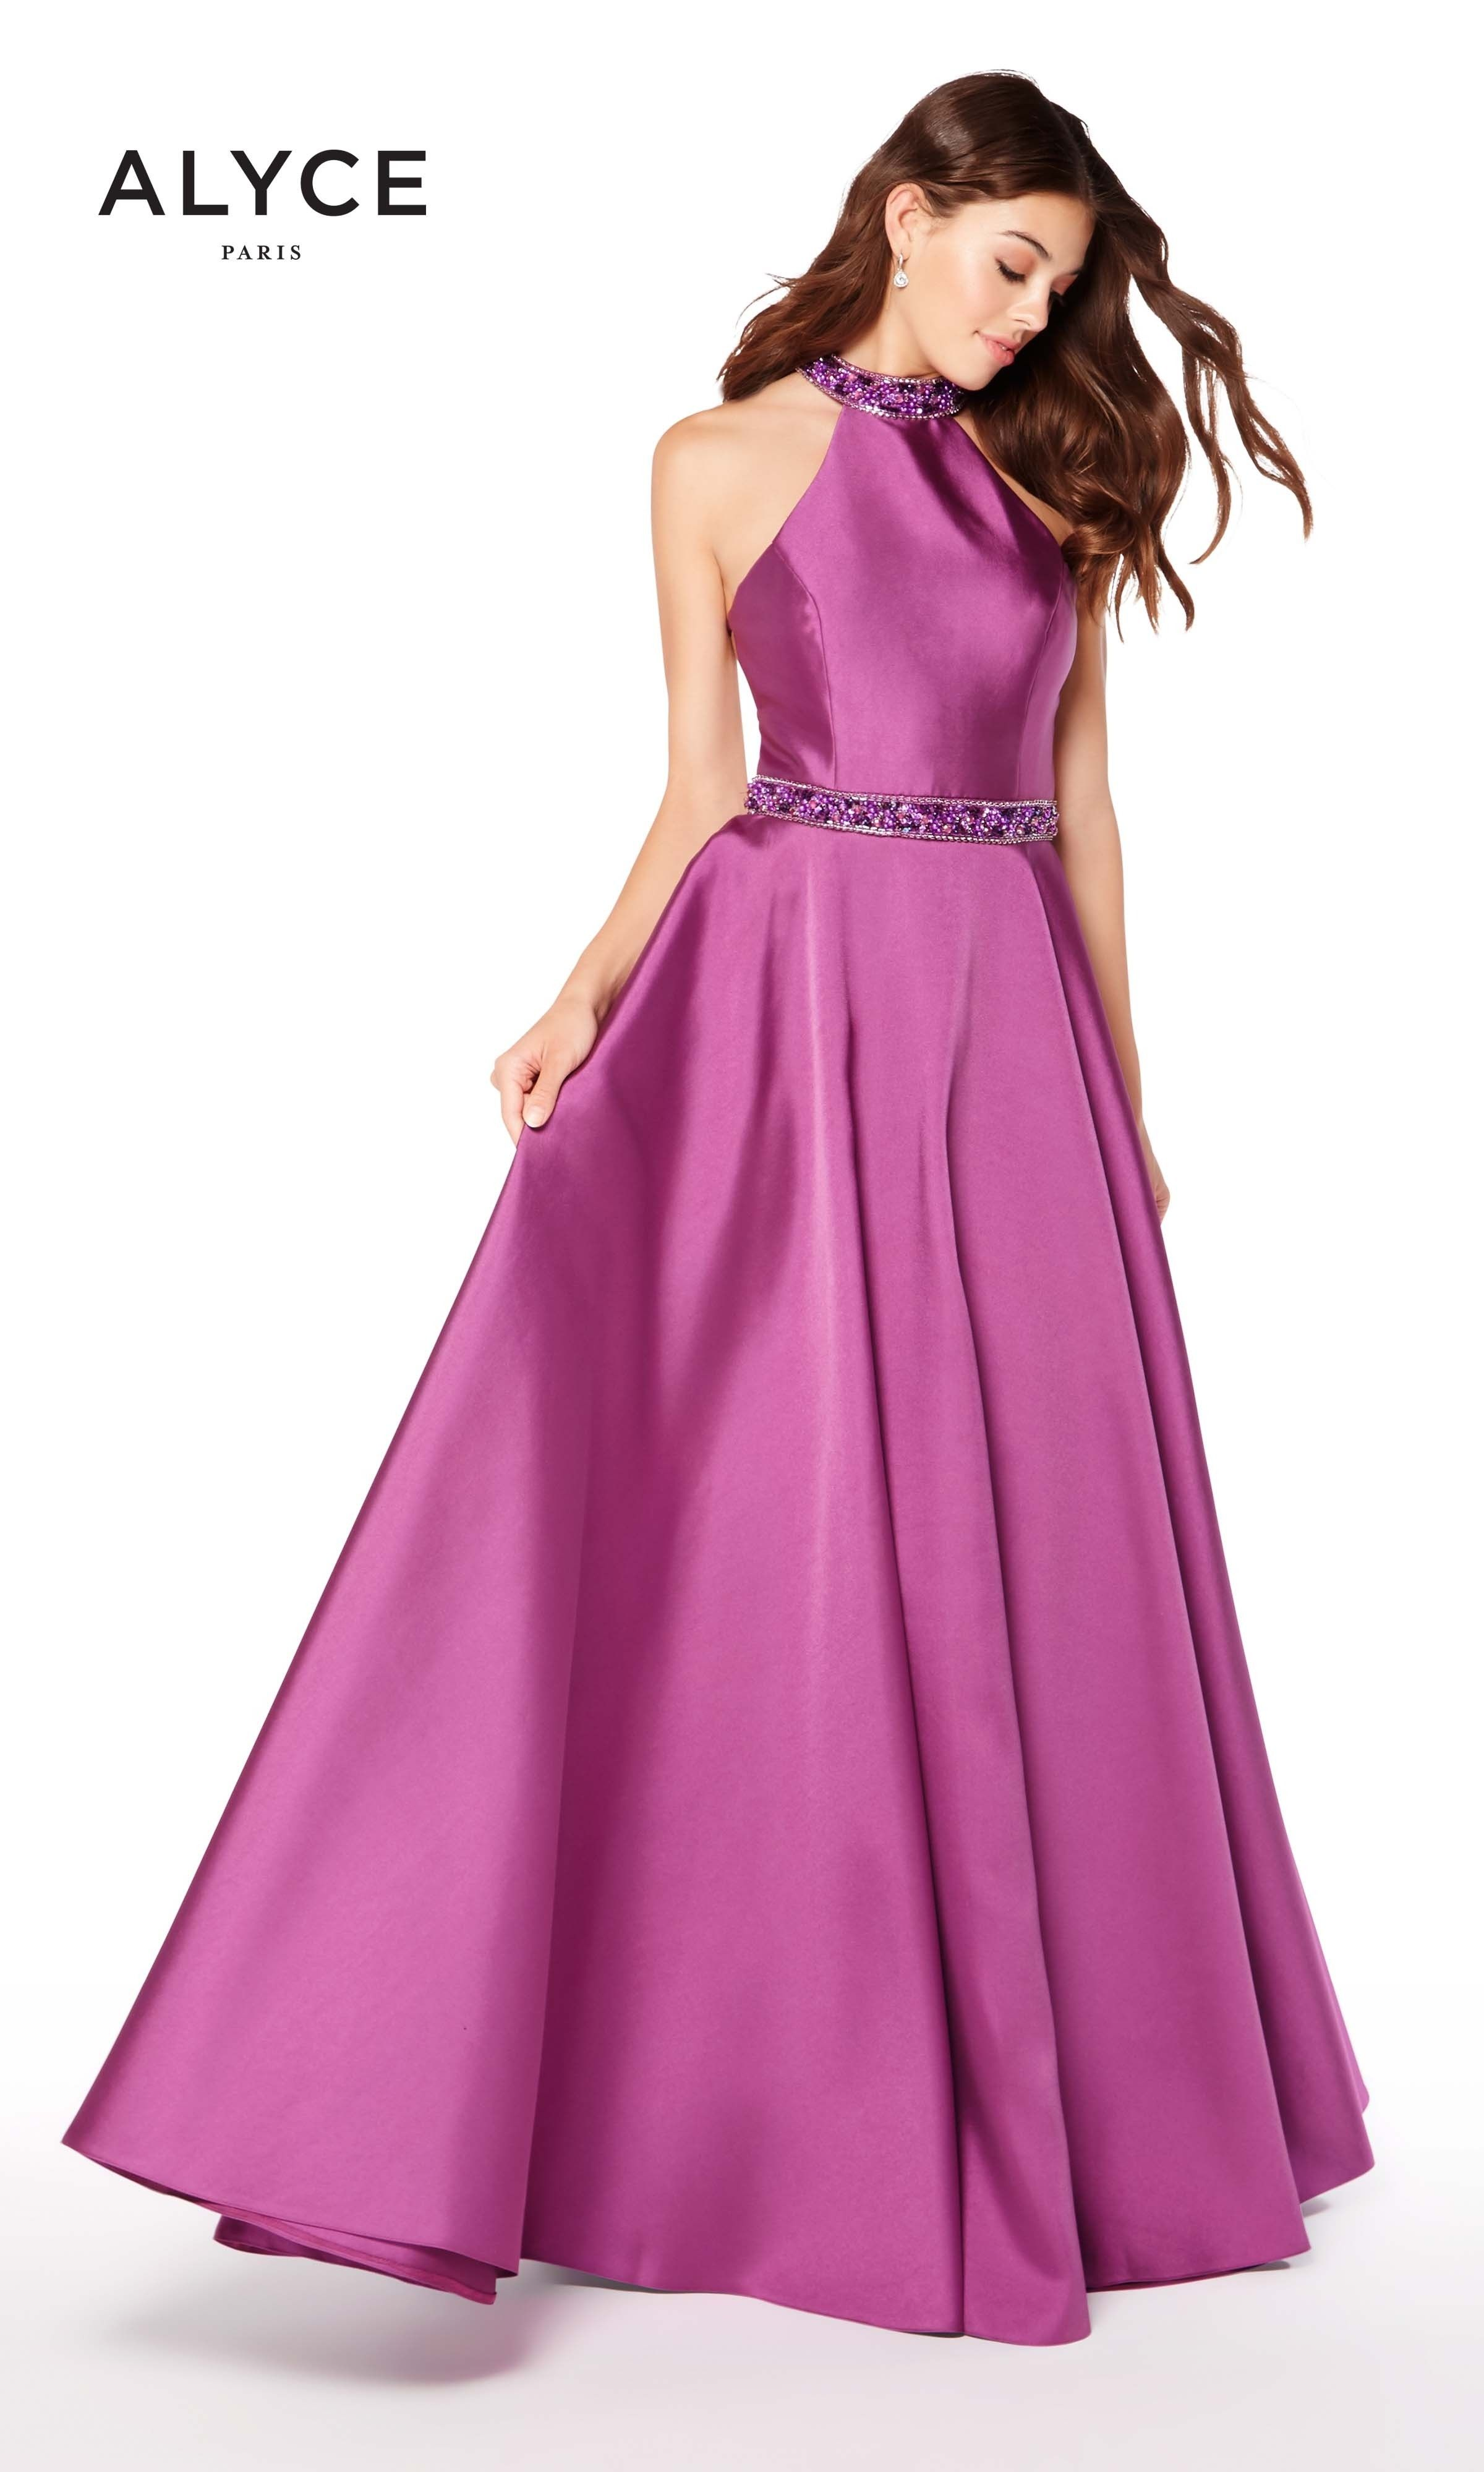 Alyce 60104 Relaxed Ballgown with Open Back and Gem Belt | Pinterest ...